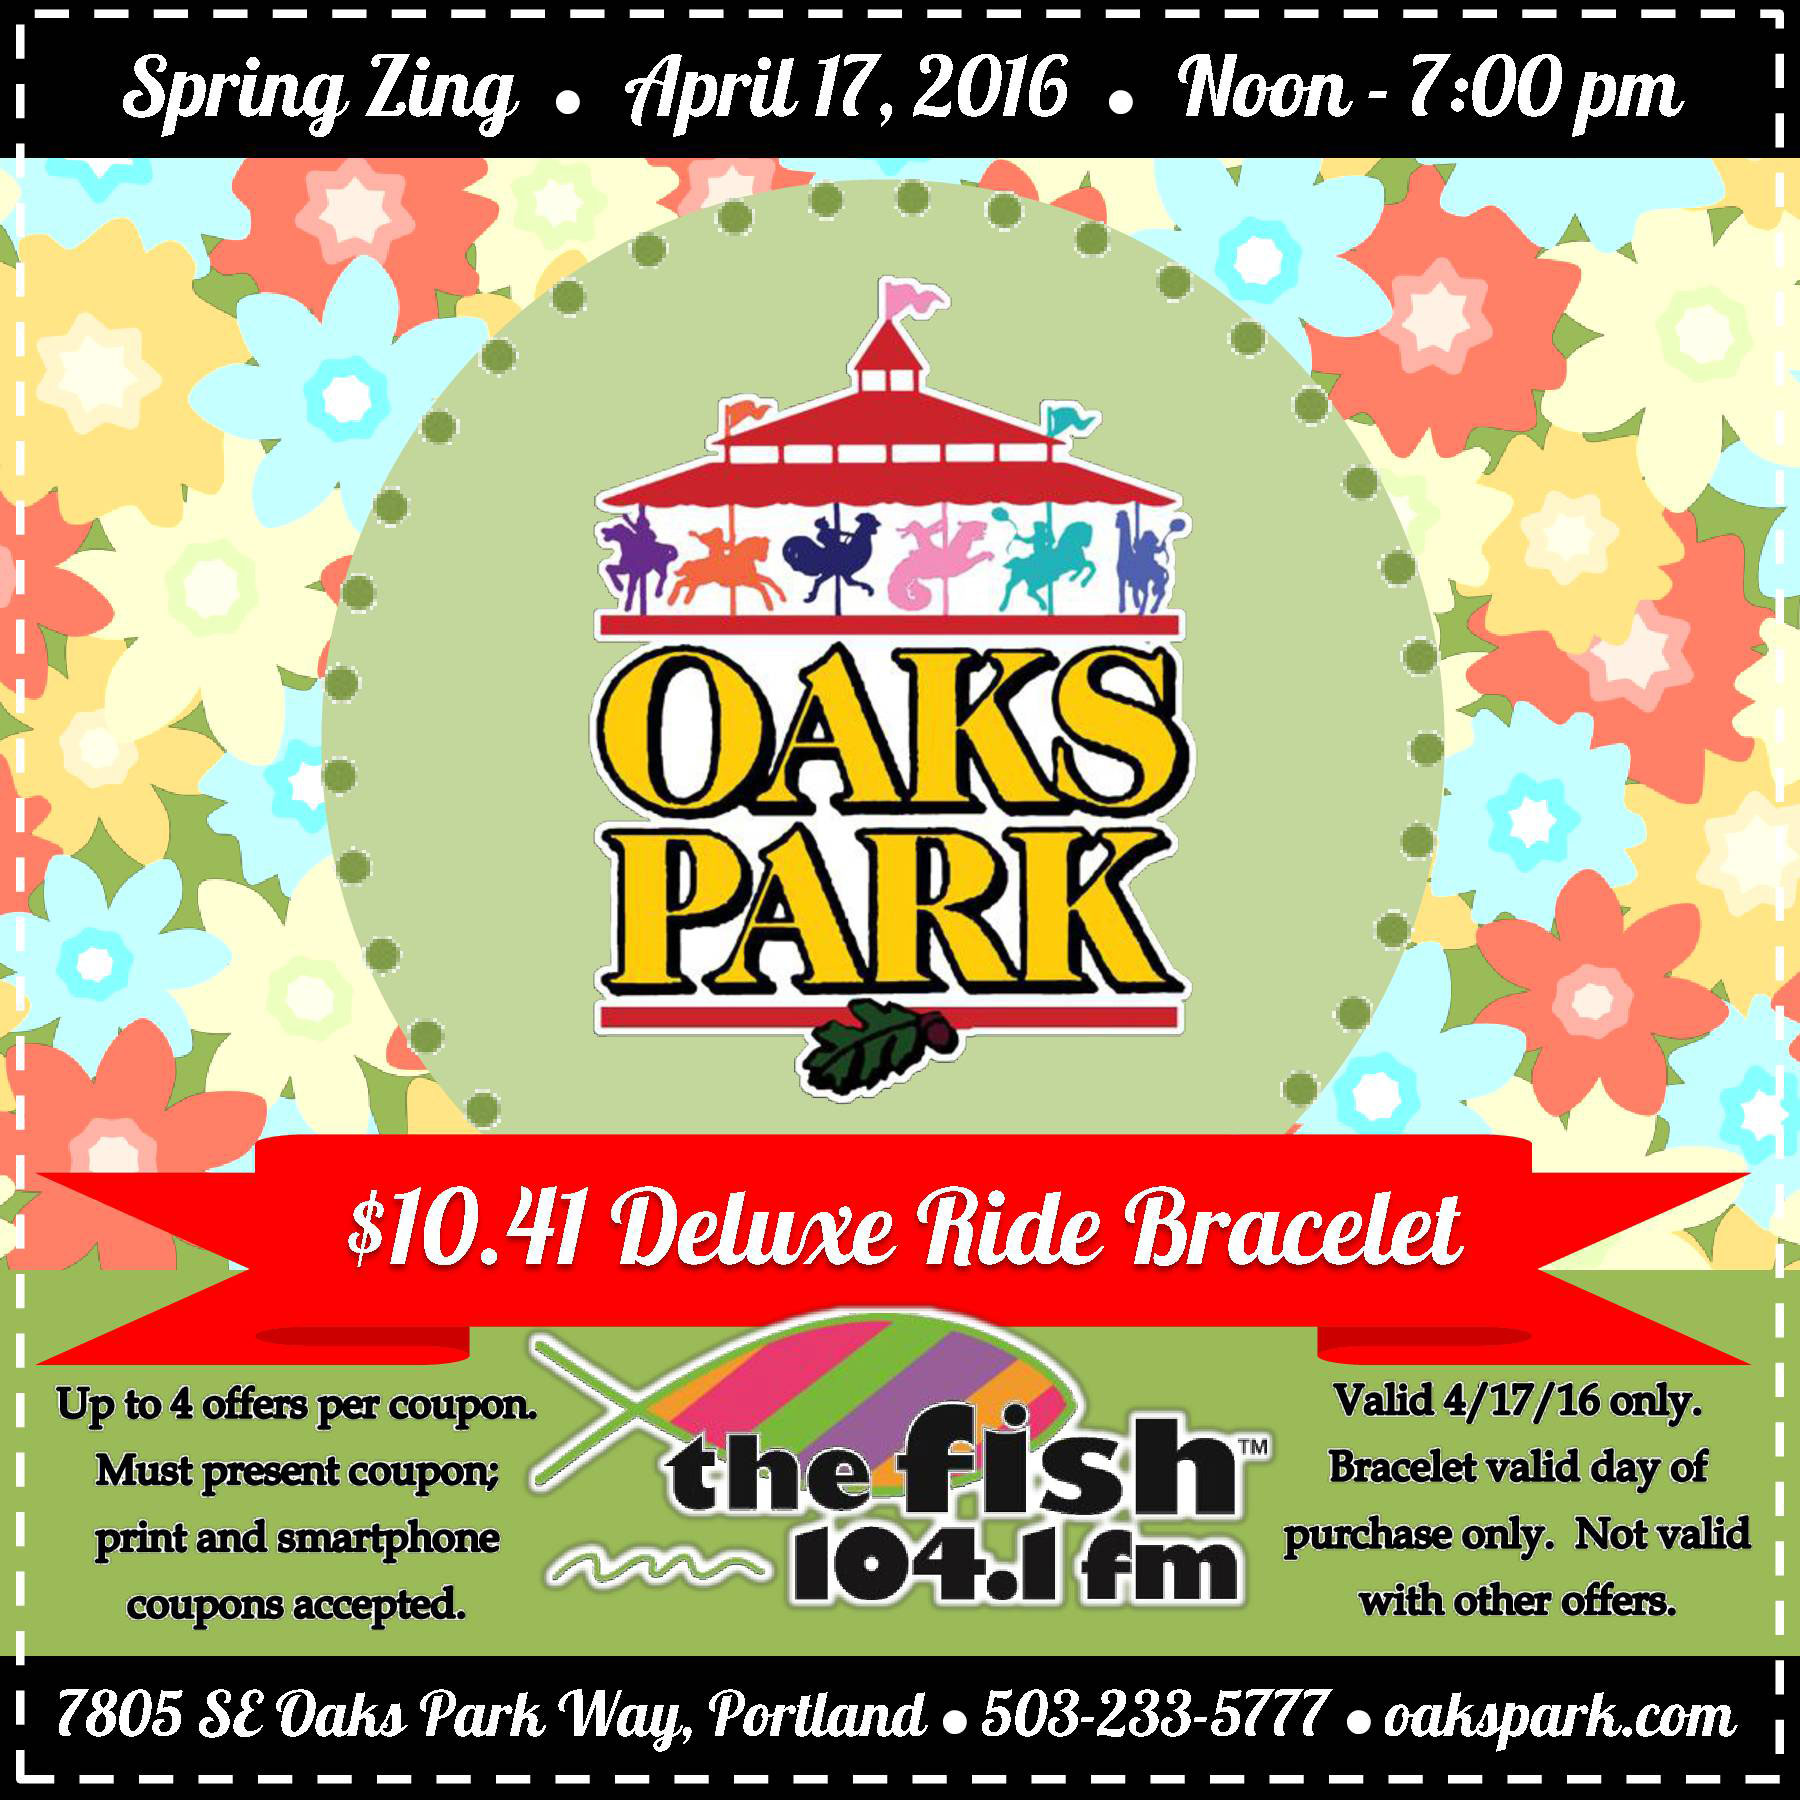 Oaks park discount coupons